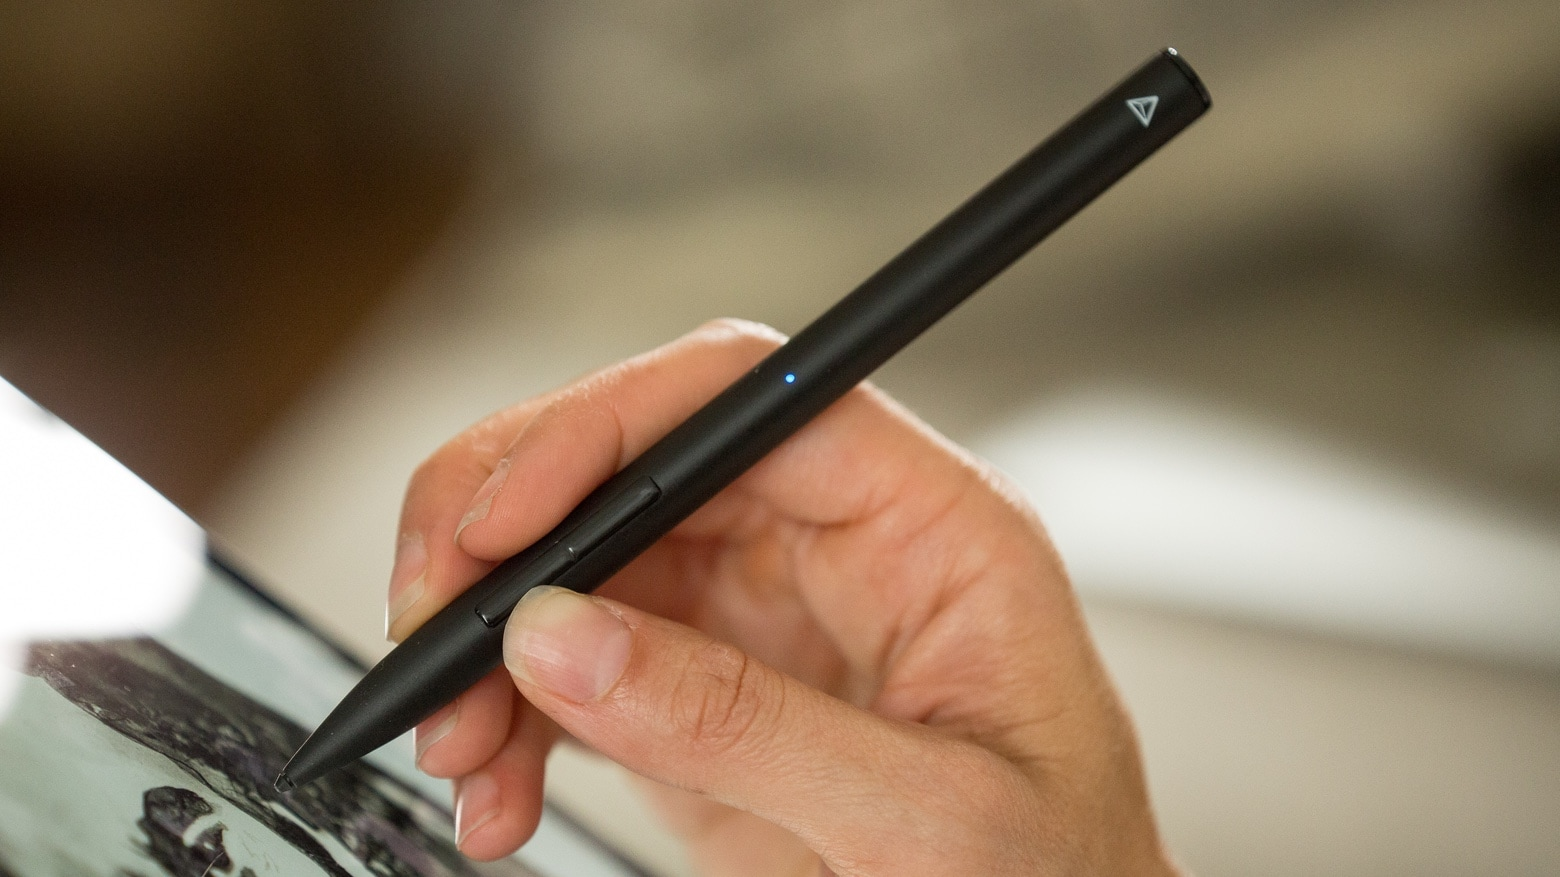 Adonit Note+ iPad stylus